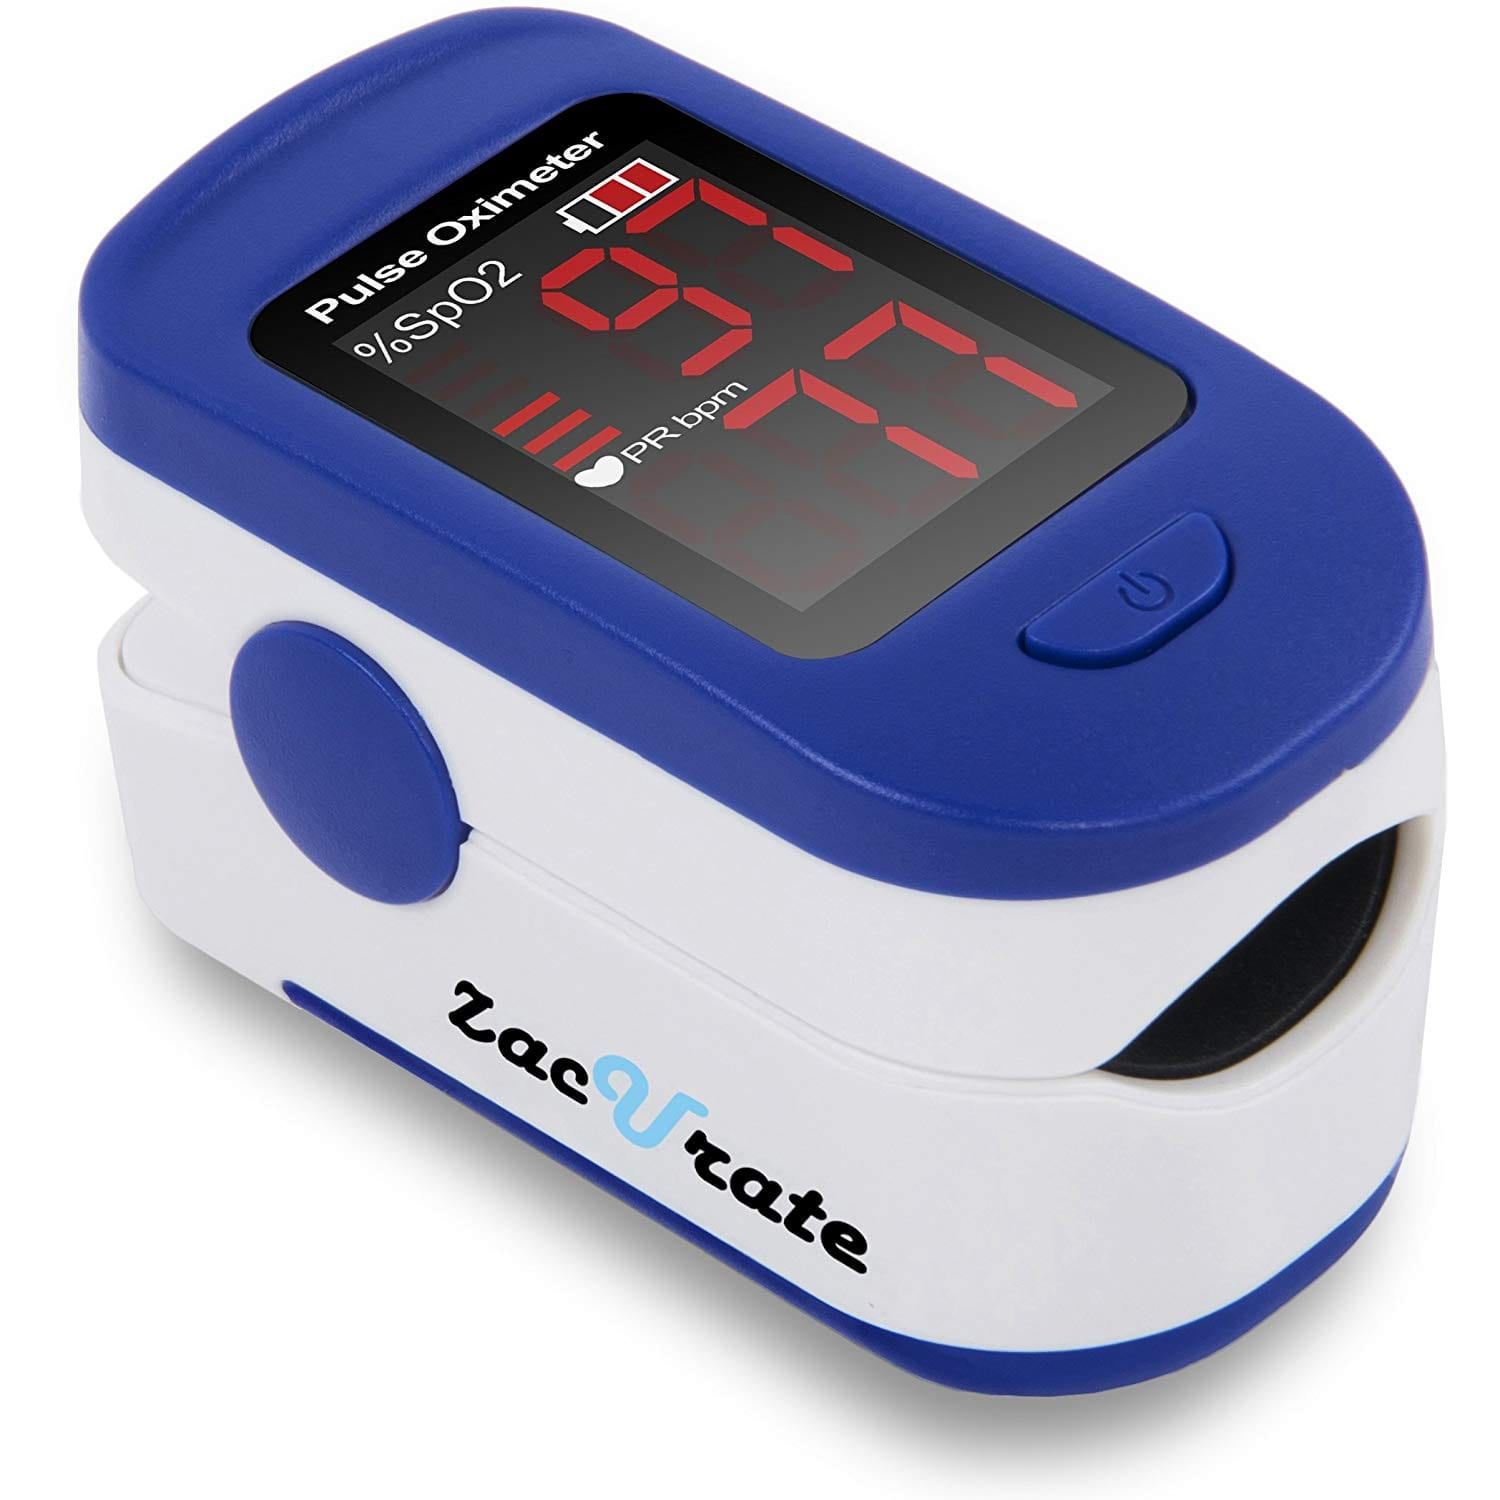 Zacurate 500BL Fingertip Pulse Oximeter Blood Oxygen Saturation Monitor $9.6